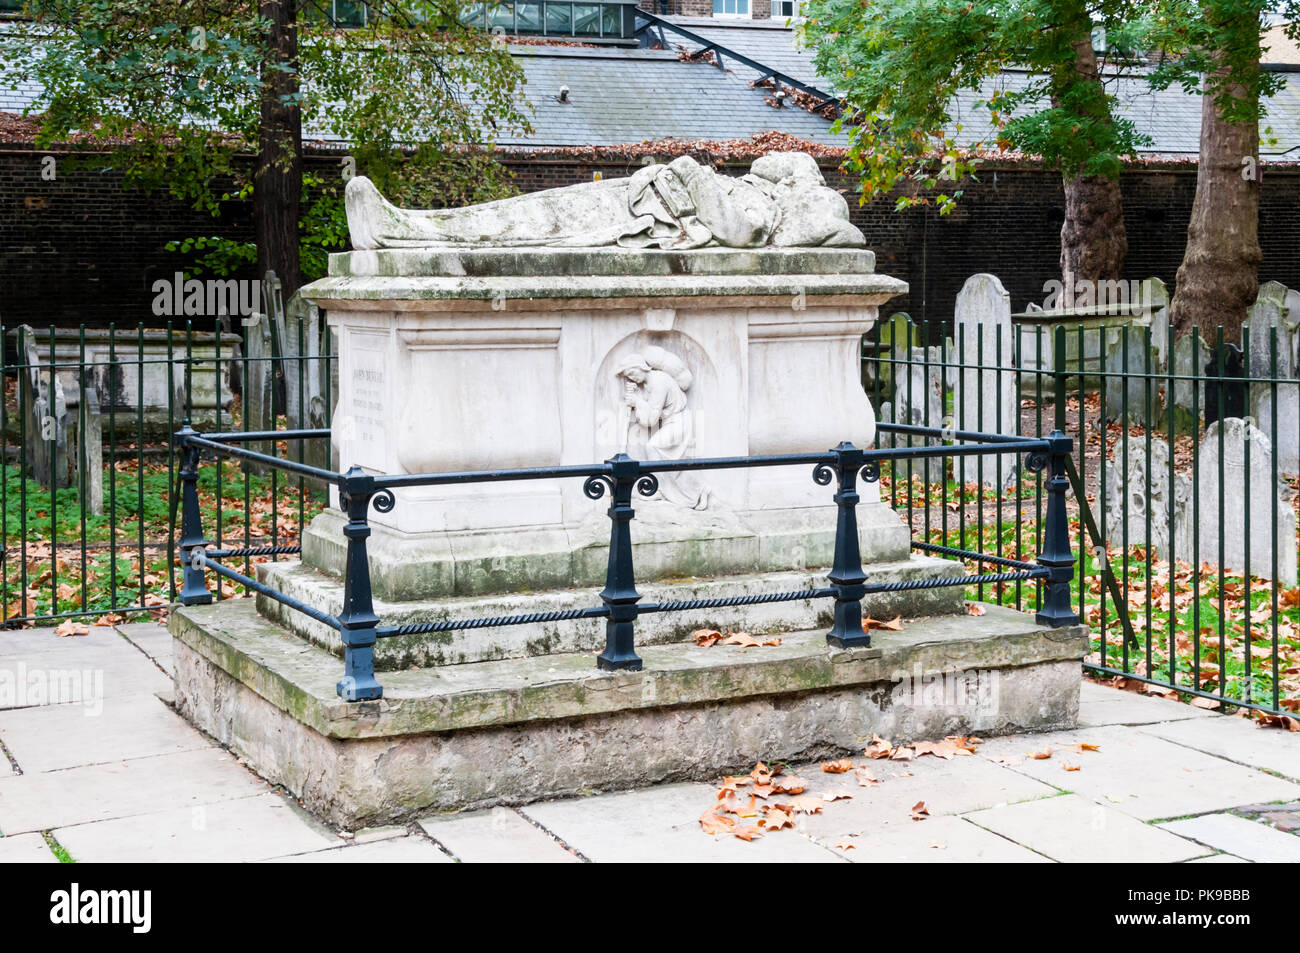 The grave of John Bunyan in Bunhill Fields burial ground, London. The 17th century writer and preacher was author of The Pilgrim's Progress. - Stock Image